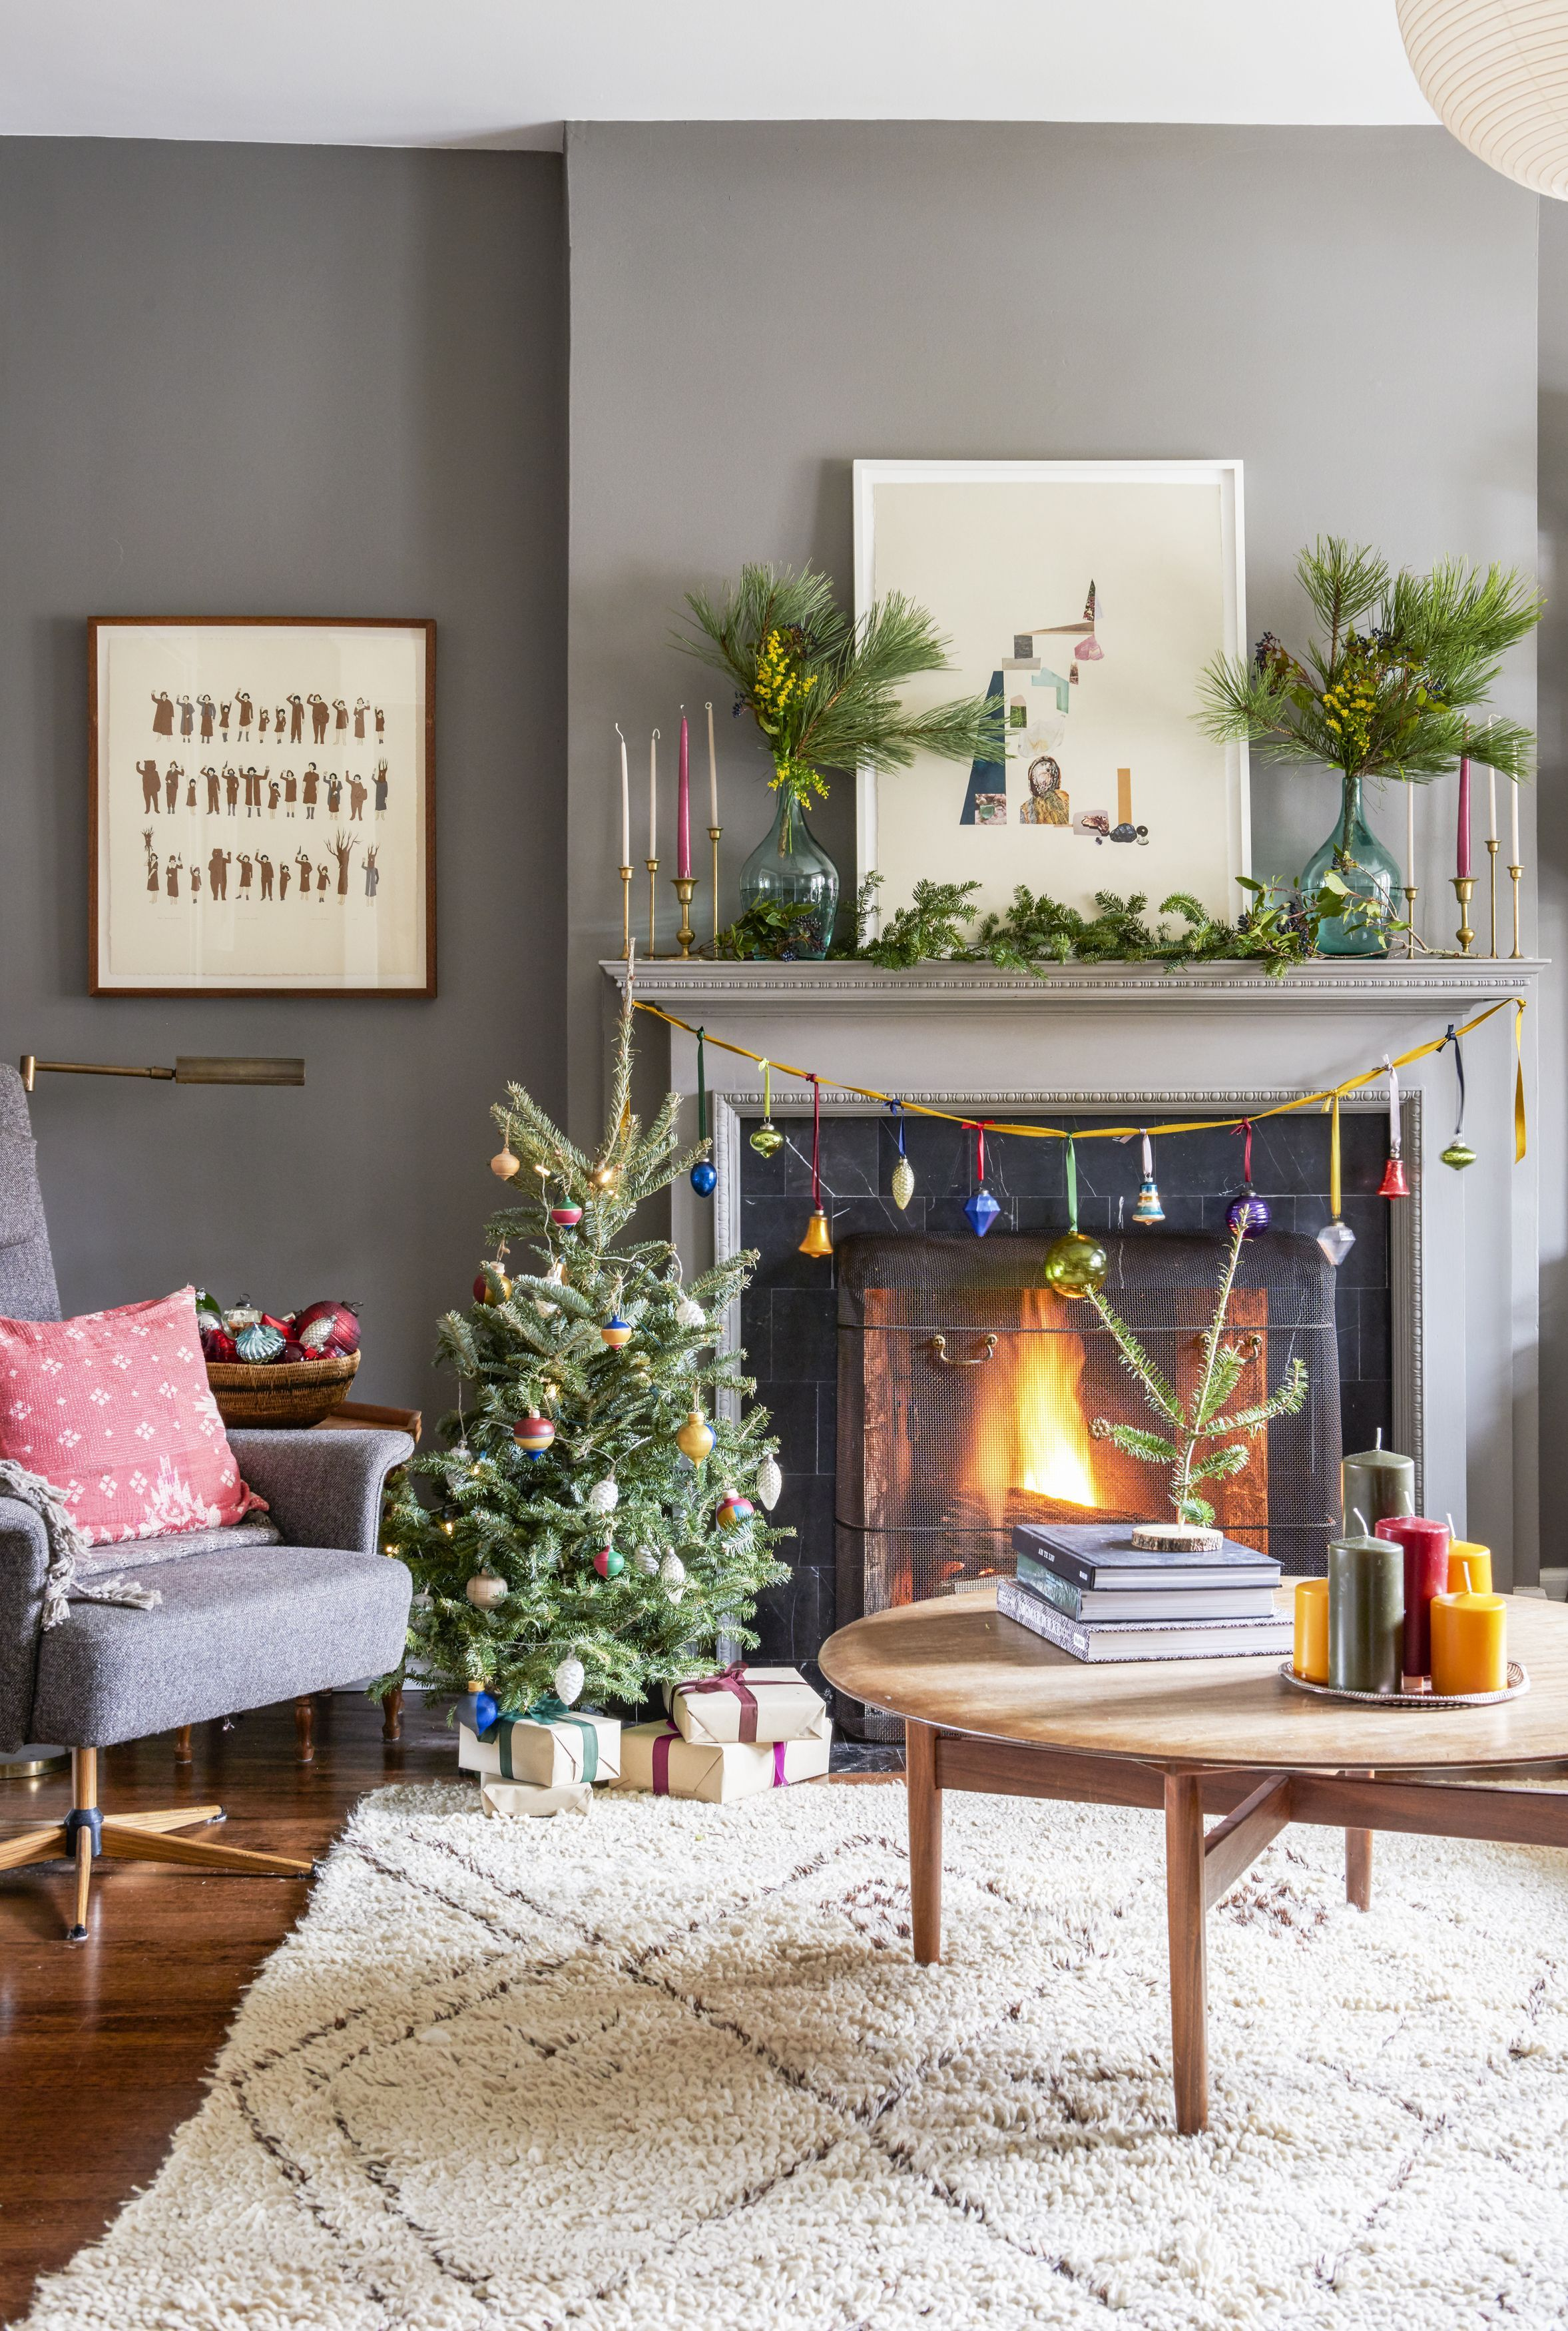 This Festive Toronto Home Is The Definition Of Cozy Chic